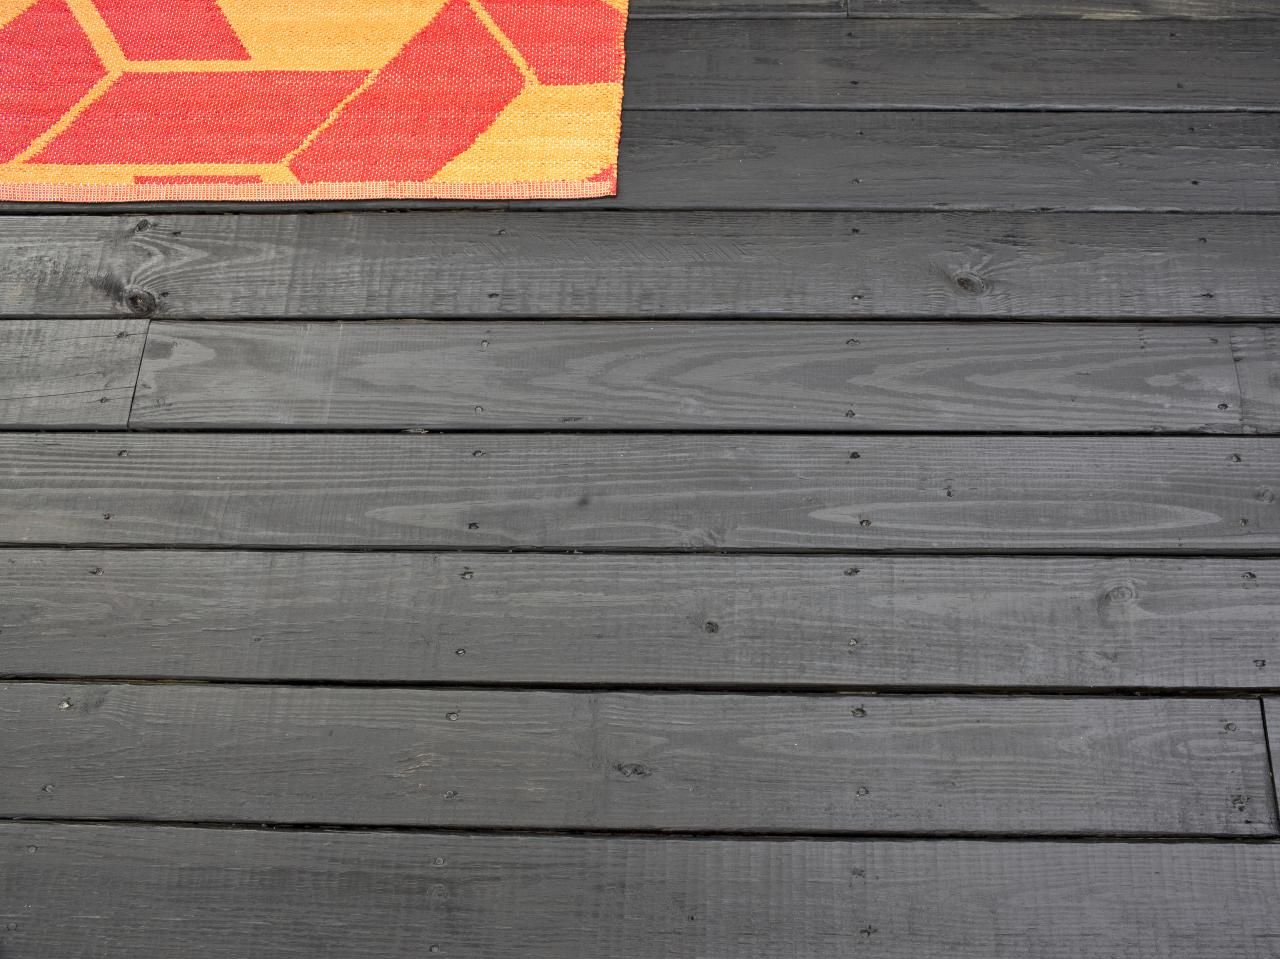 How to stain a wooden deck wooden decks and outdoor spaces for Garden decking varnish